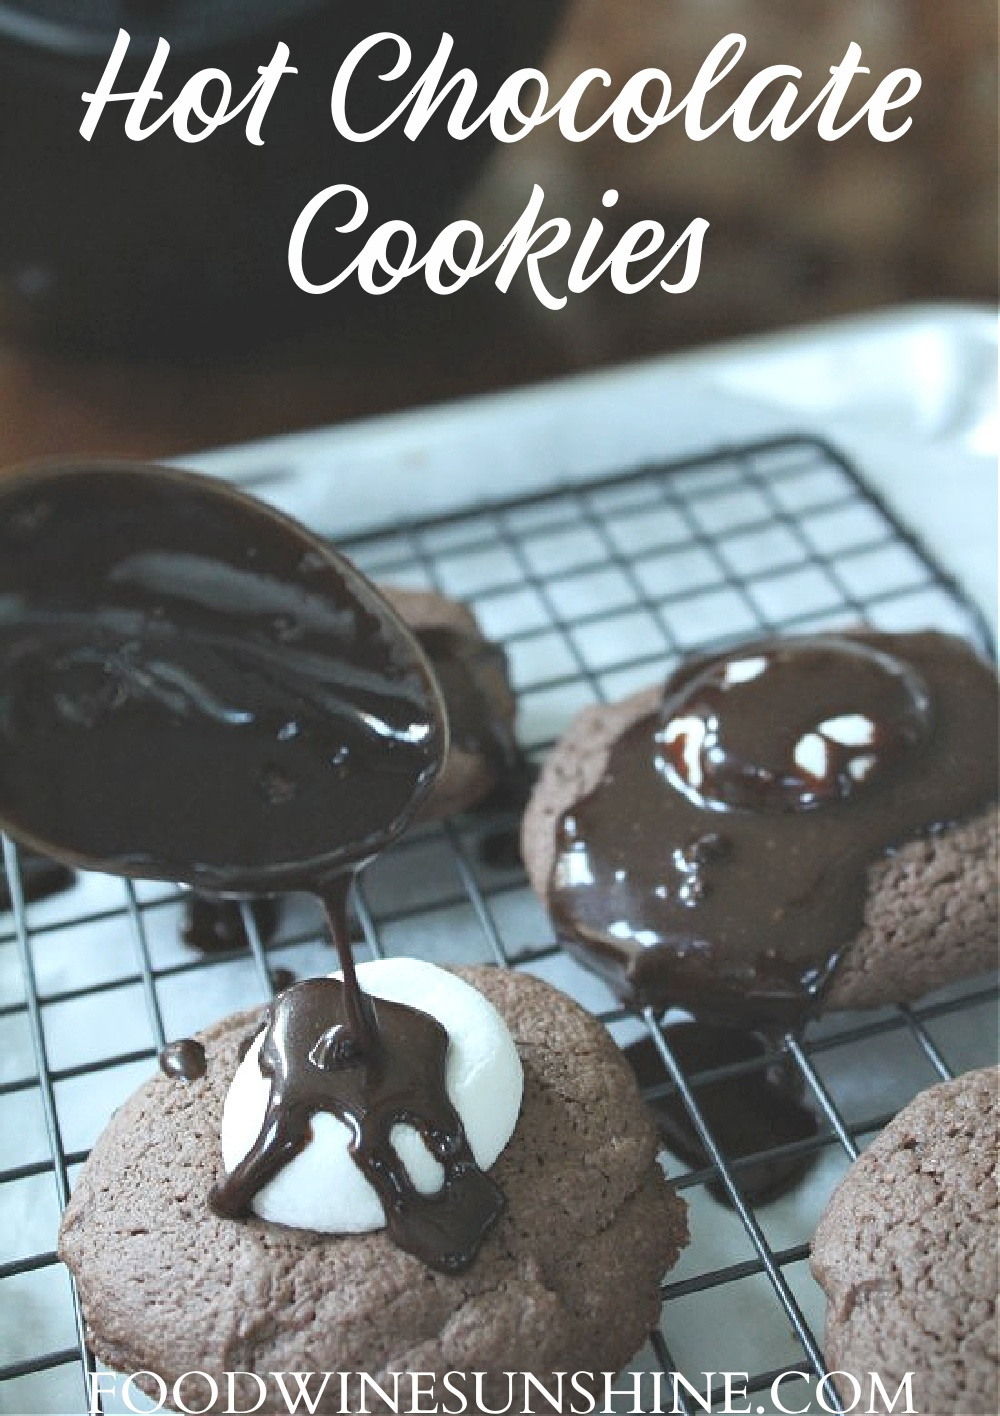 How To Make Hot Chocolate Cookies